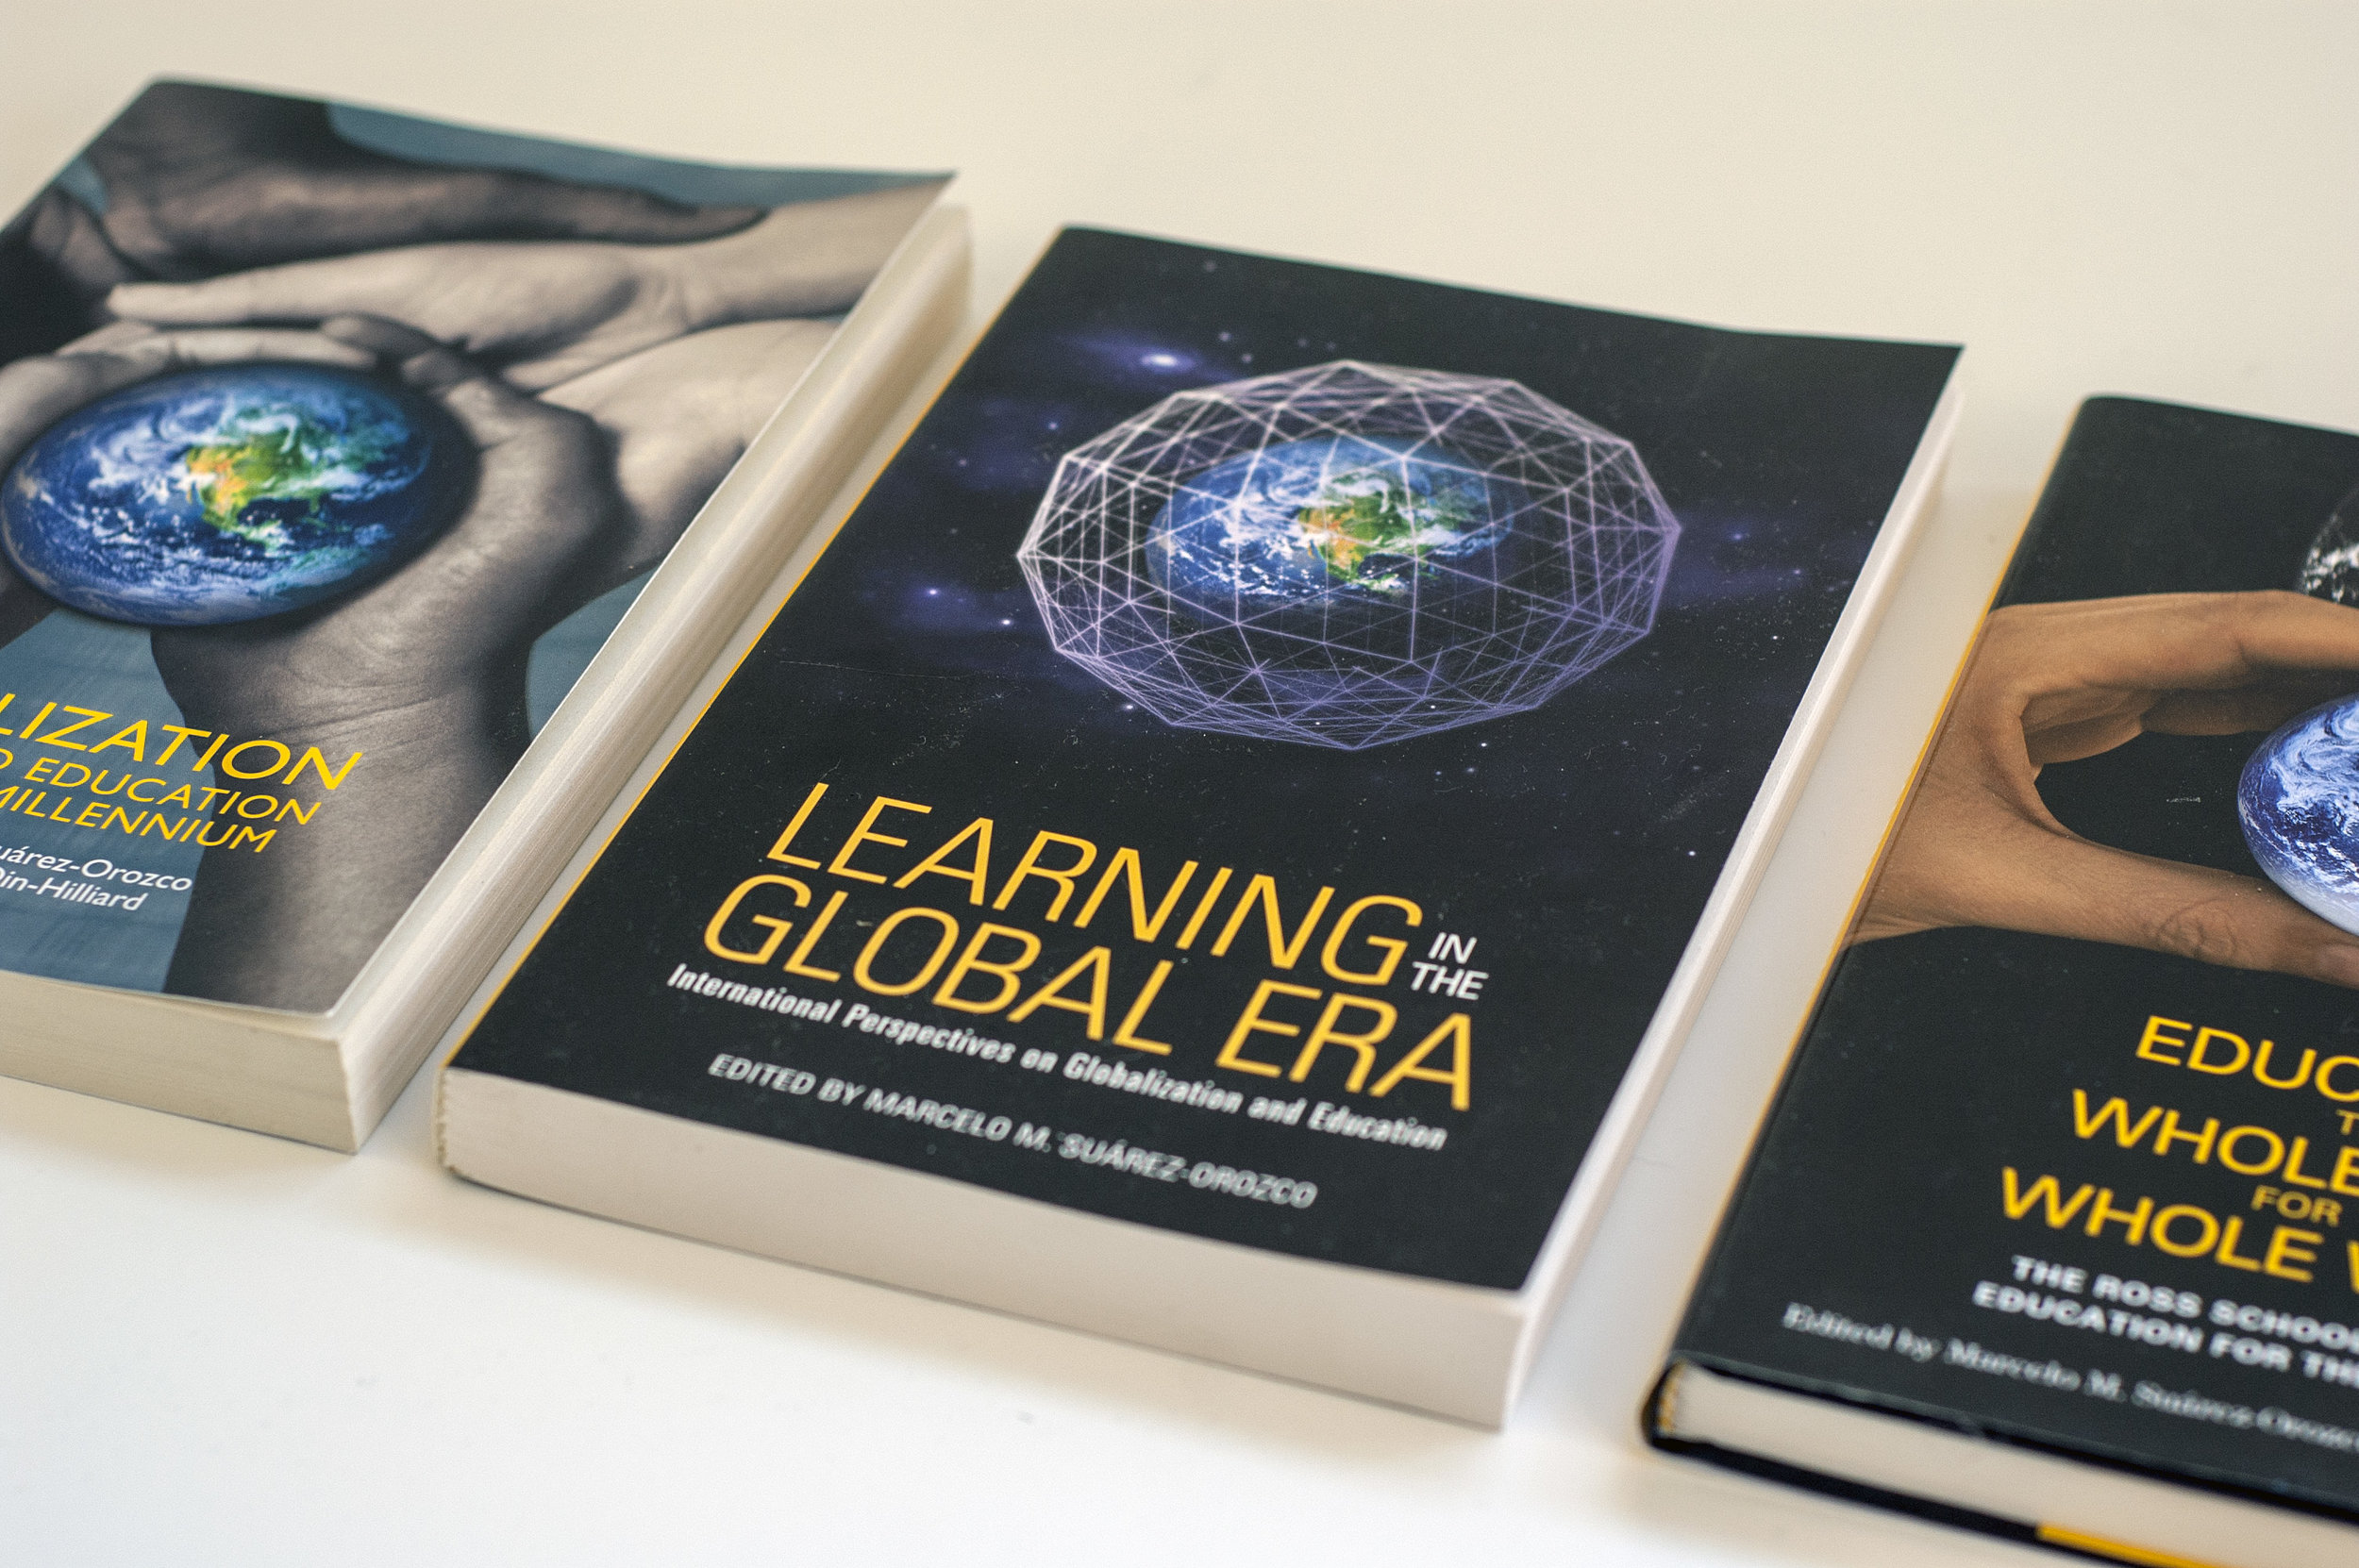 globalization and education books julie iden